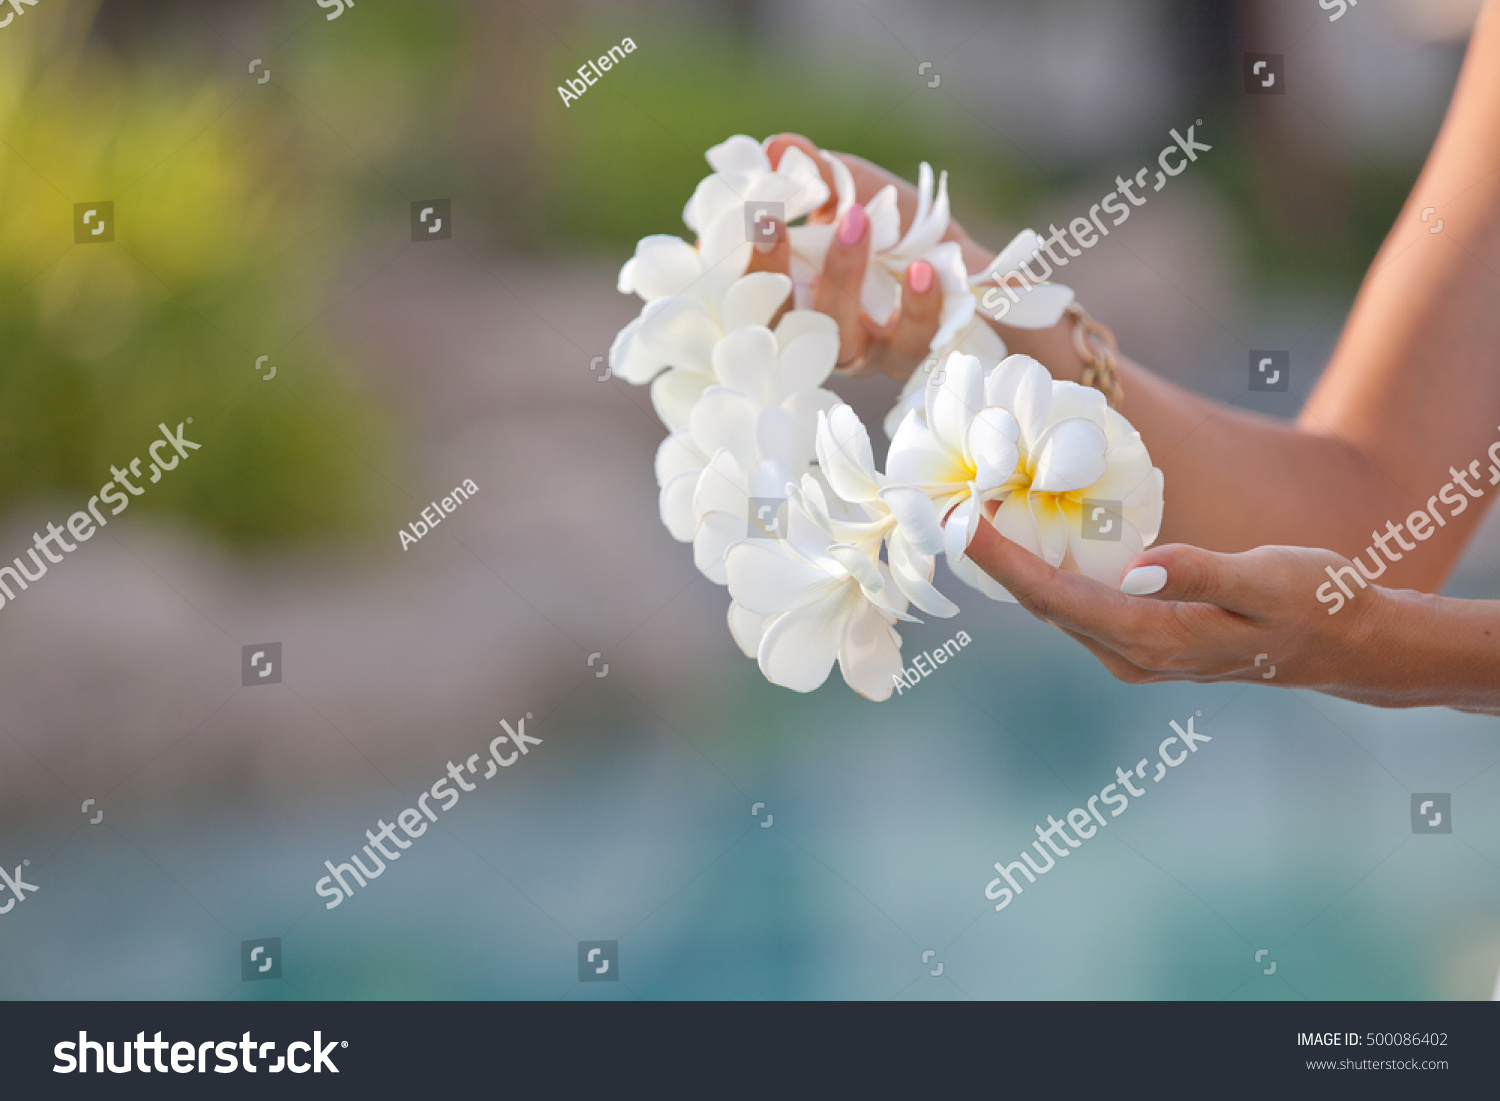 Woman hands holding flower lei garland of white plumeria welcoming id 500086402 izmirmasajfo